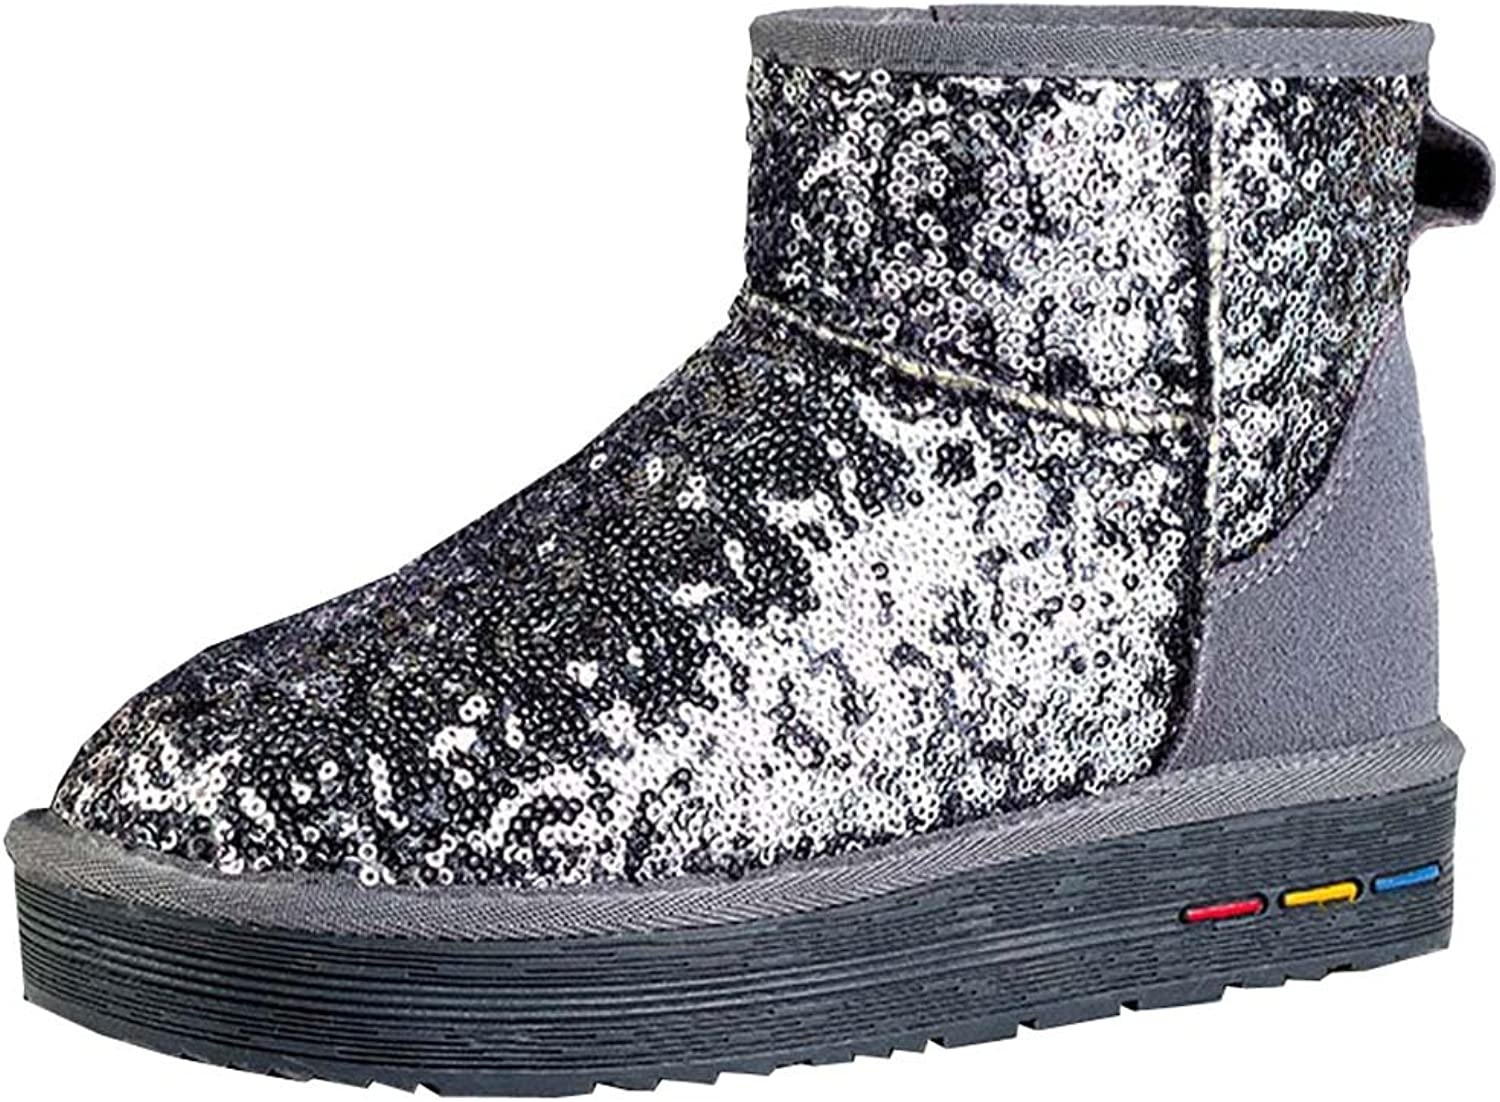 New women's snow boots warm cotton-padded shoes casual sequined Fabric